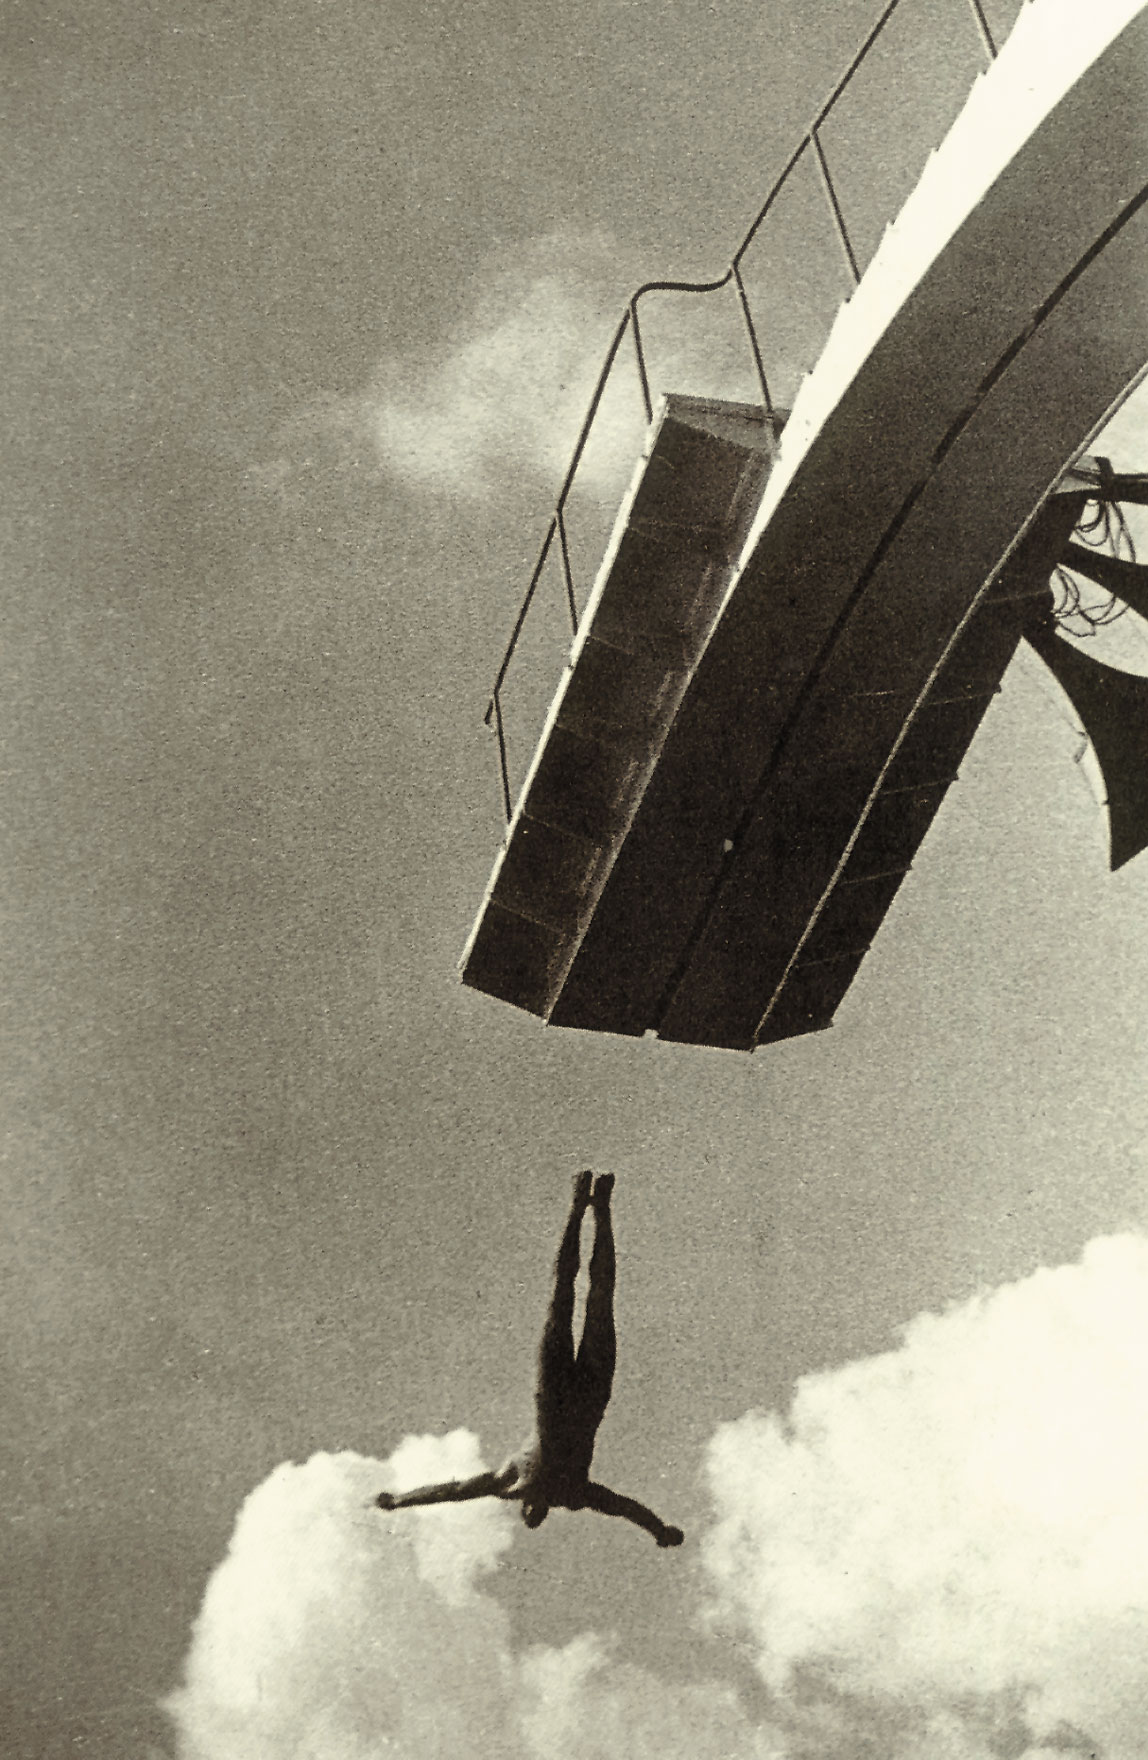 alexander essay rodchenko Alexander rodchenko was born in 1891 in saint petersburg at the age of 14, he and his family moved to kazan where he enrolled in the kazan art school here, he met the artist varvara stepanova, who he would marry and work with for the rest of his life.